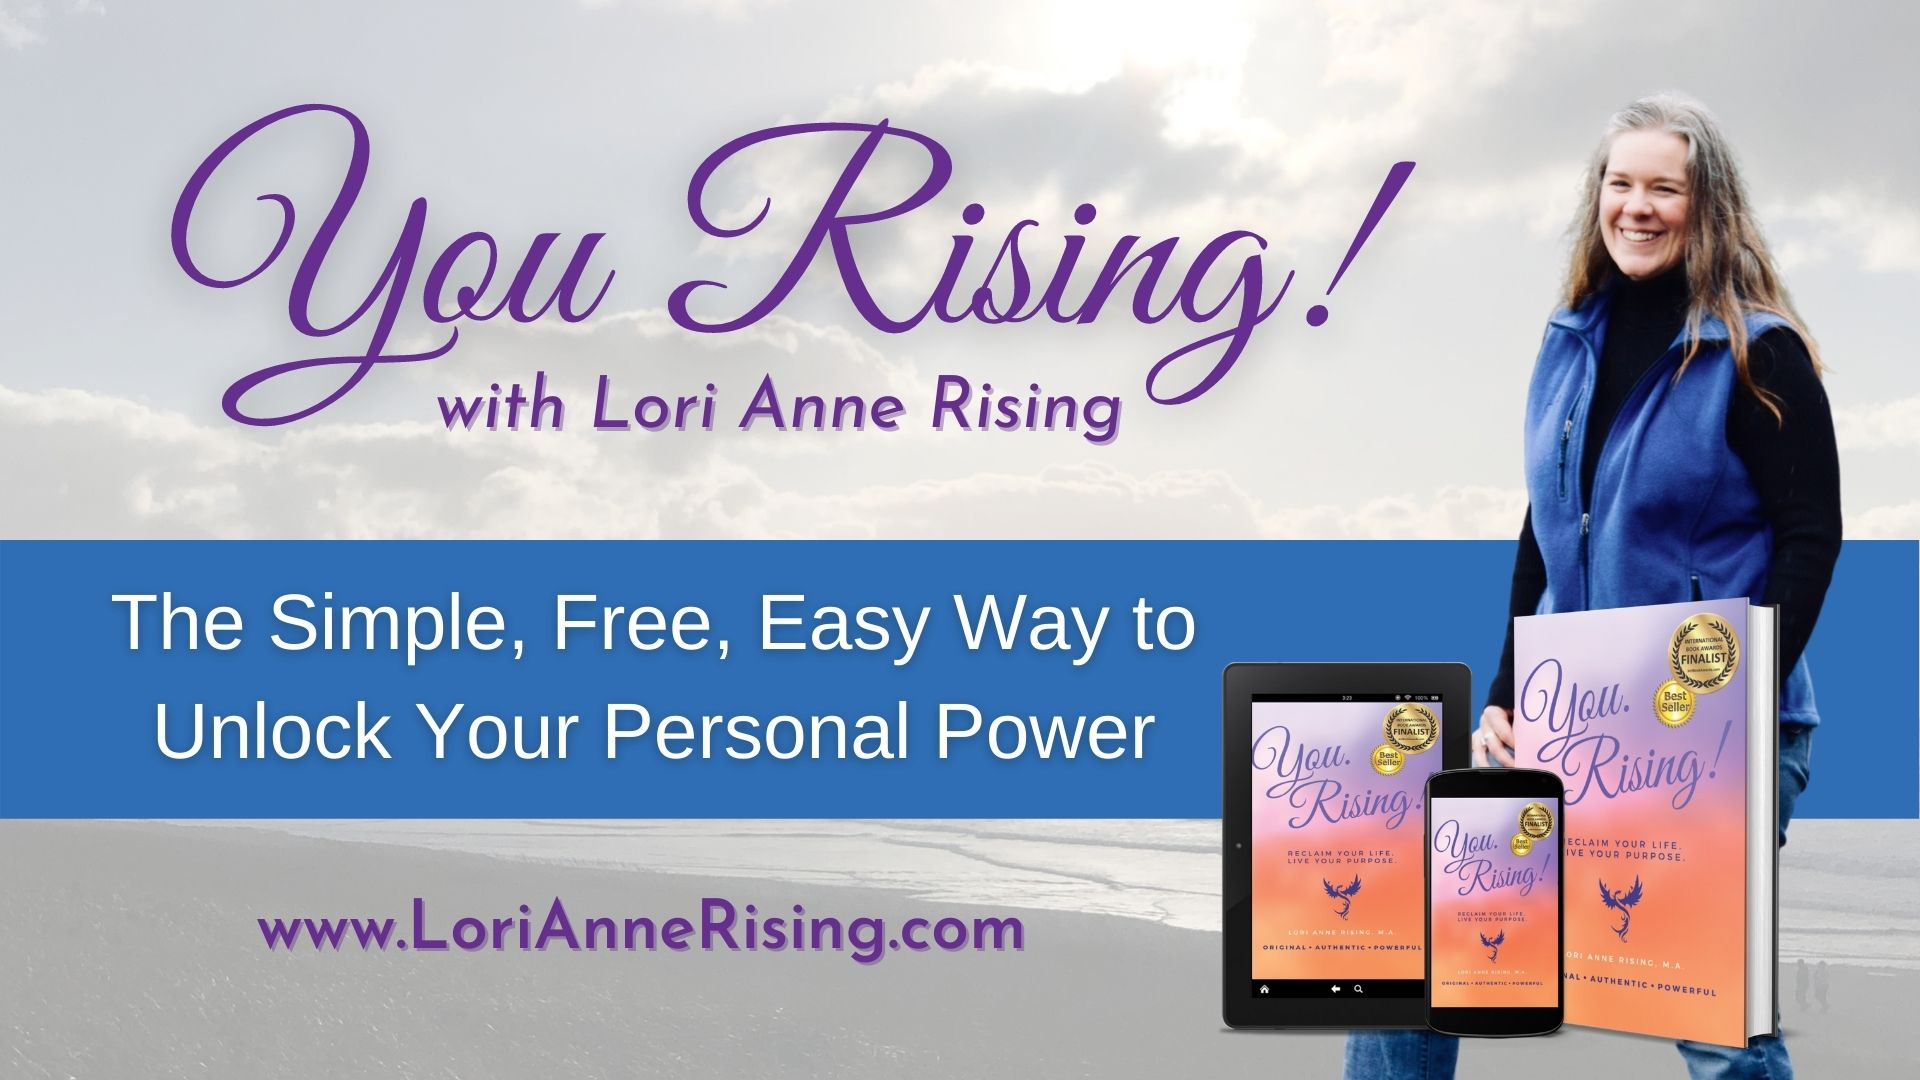 CoverSimple, Free, Easy Way to Unlock Personal Power